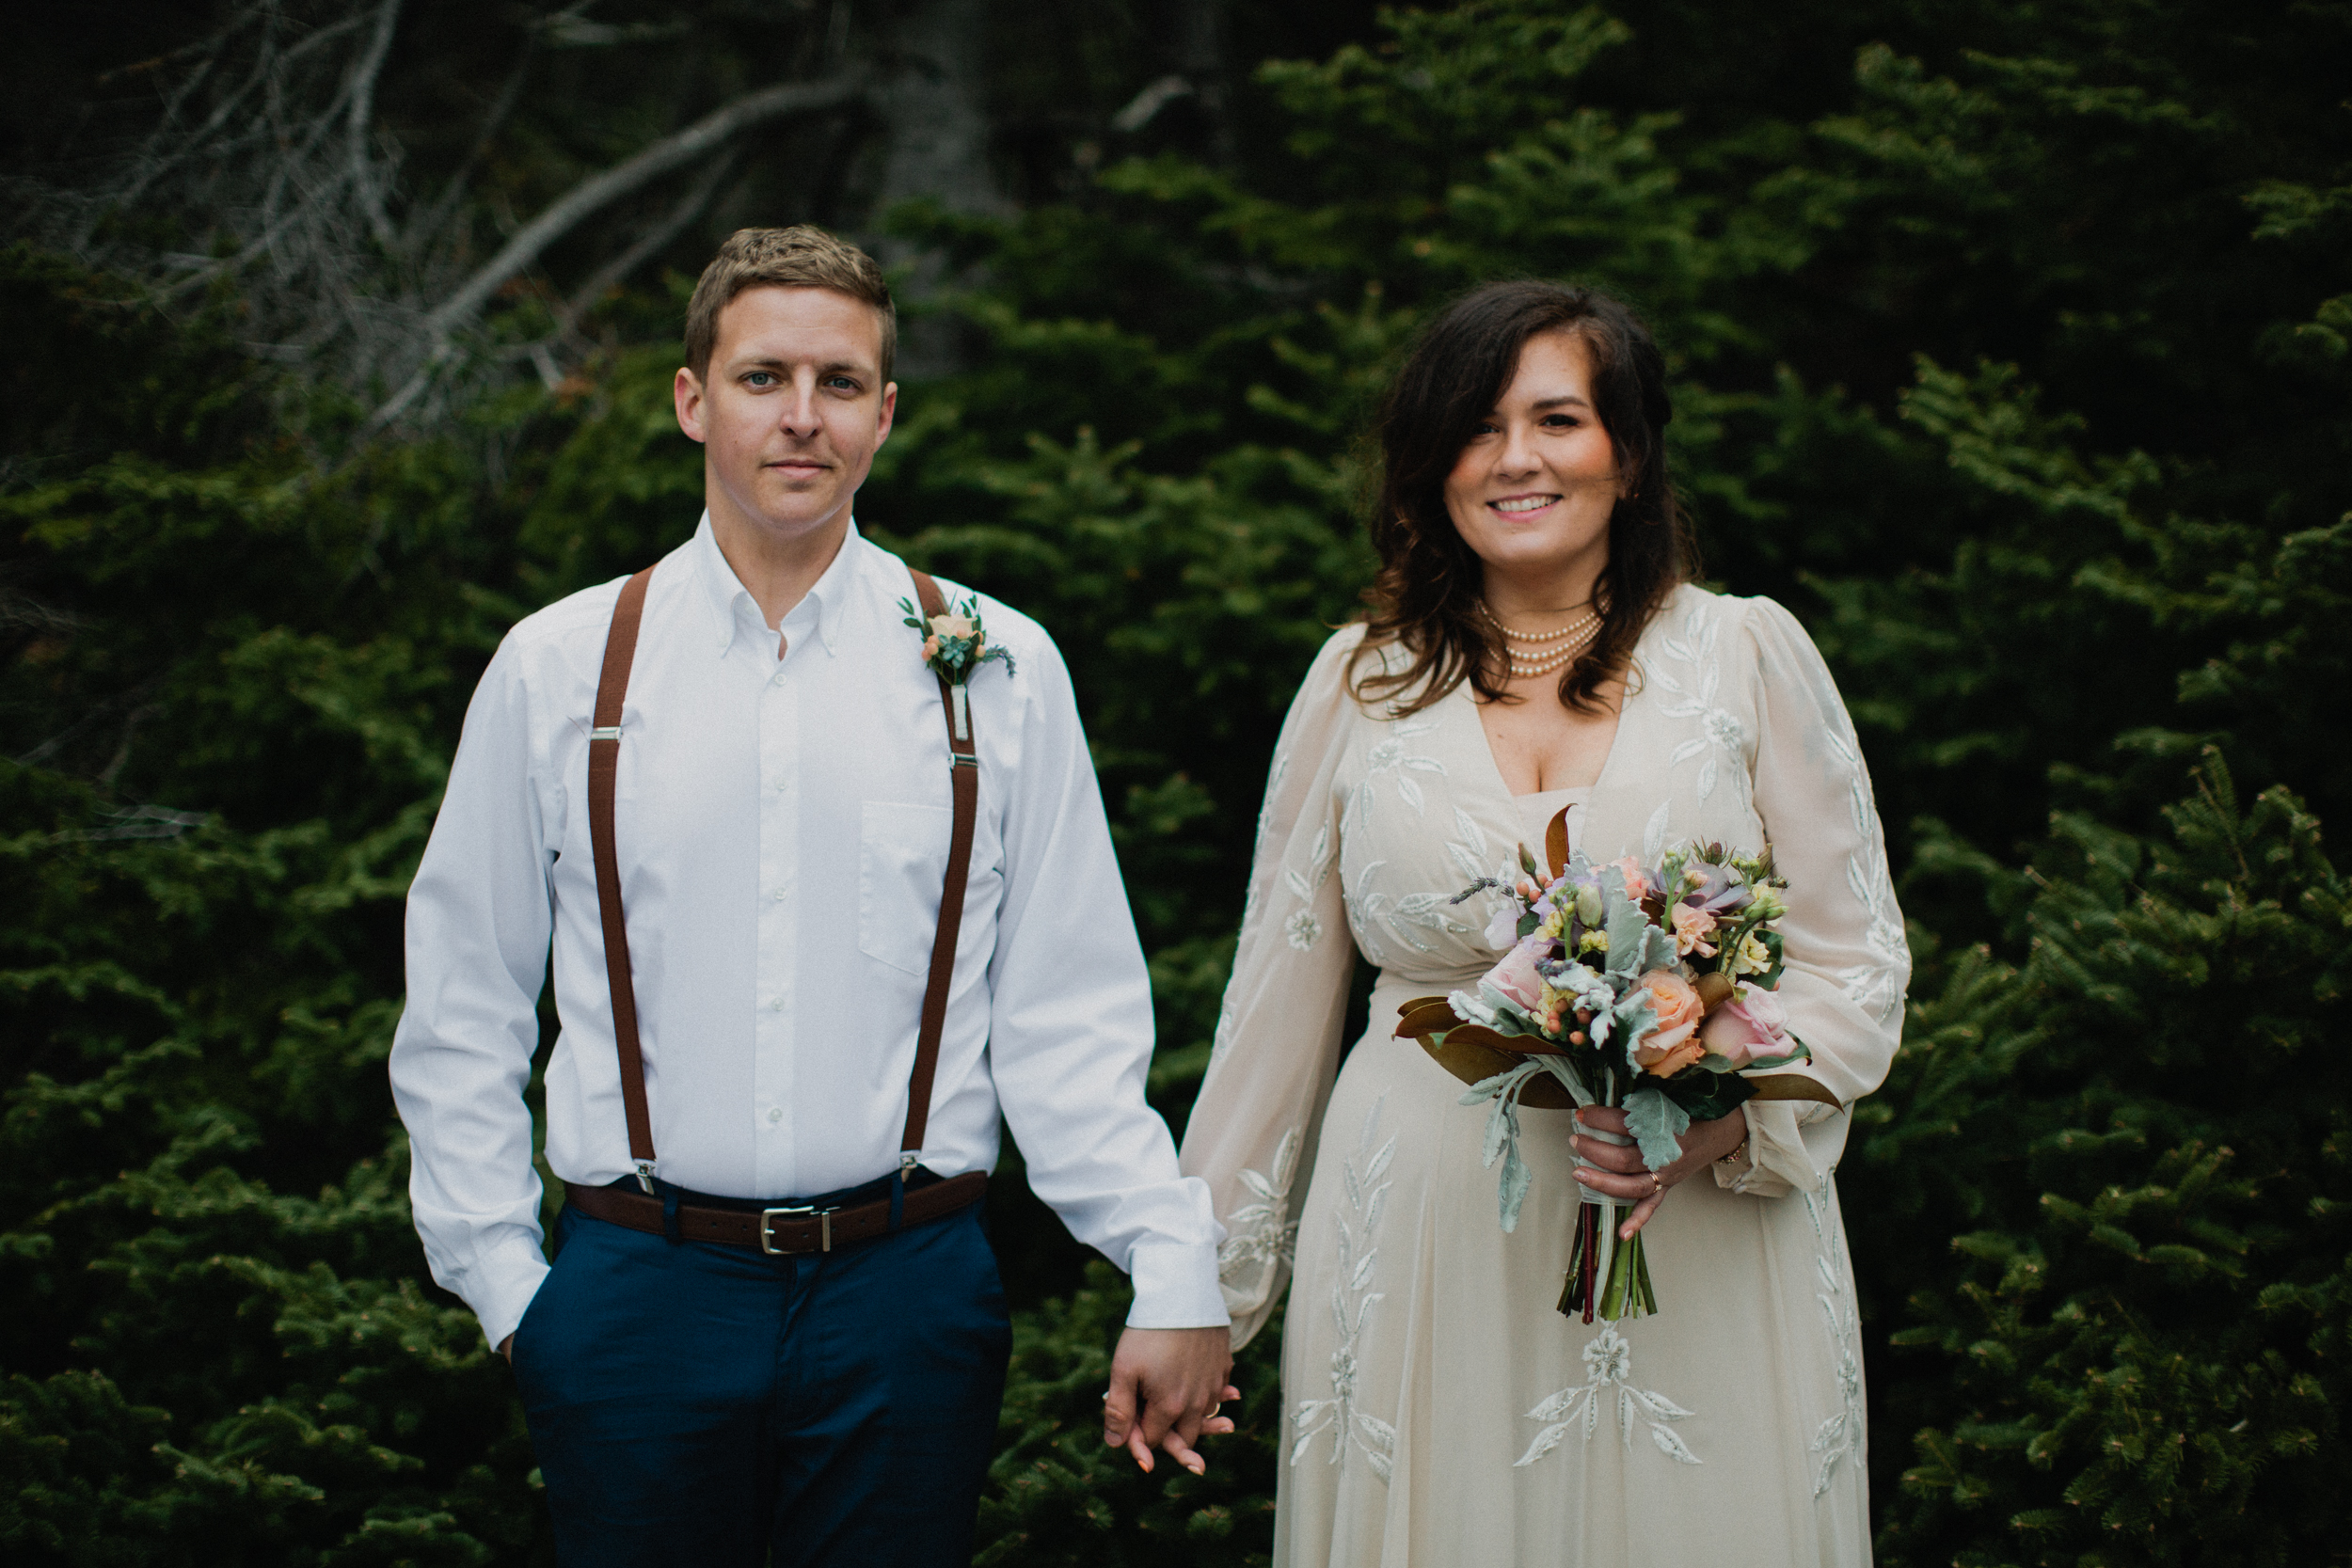 Acadia-Elopement-Photos-408.jpg